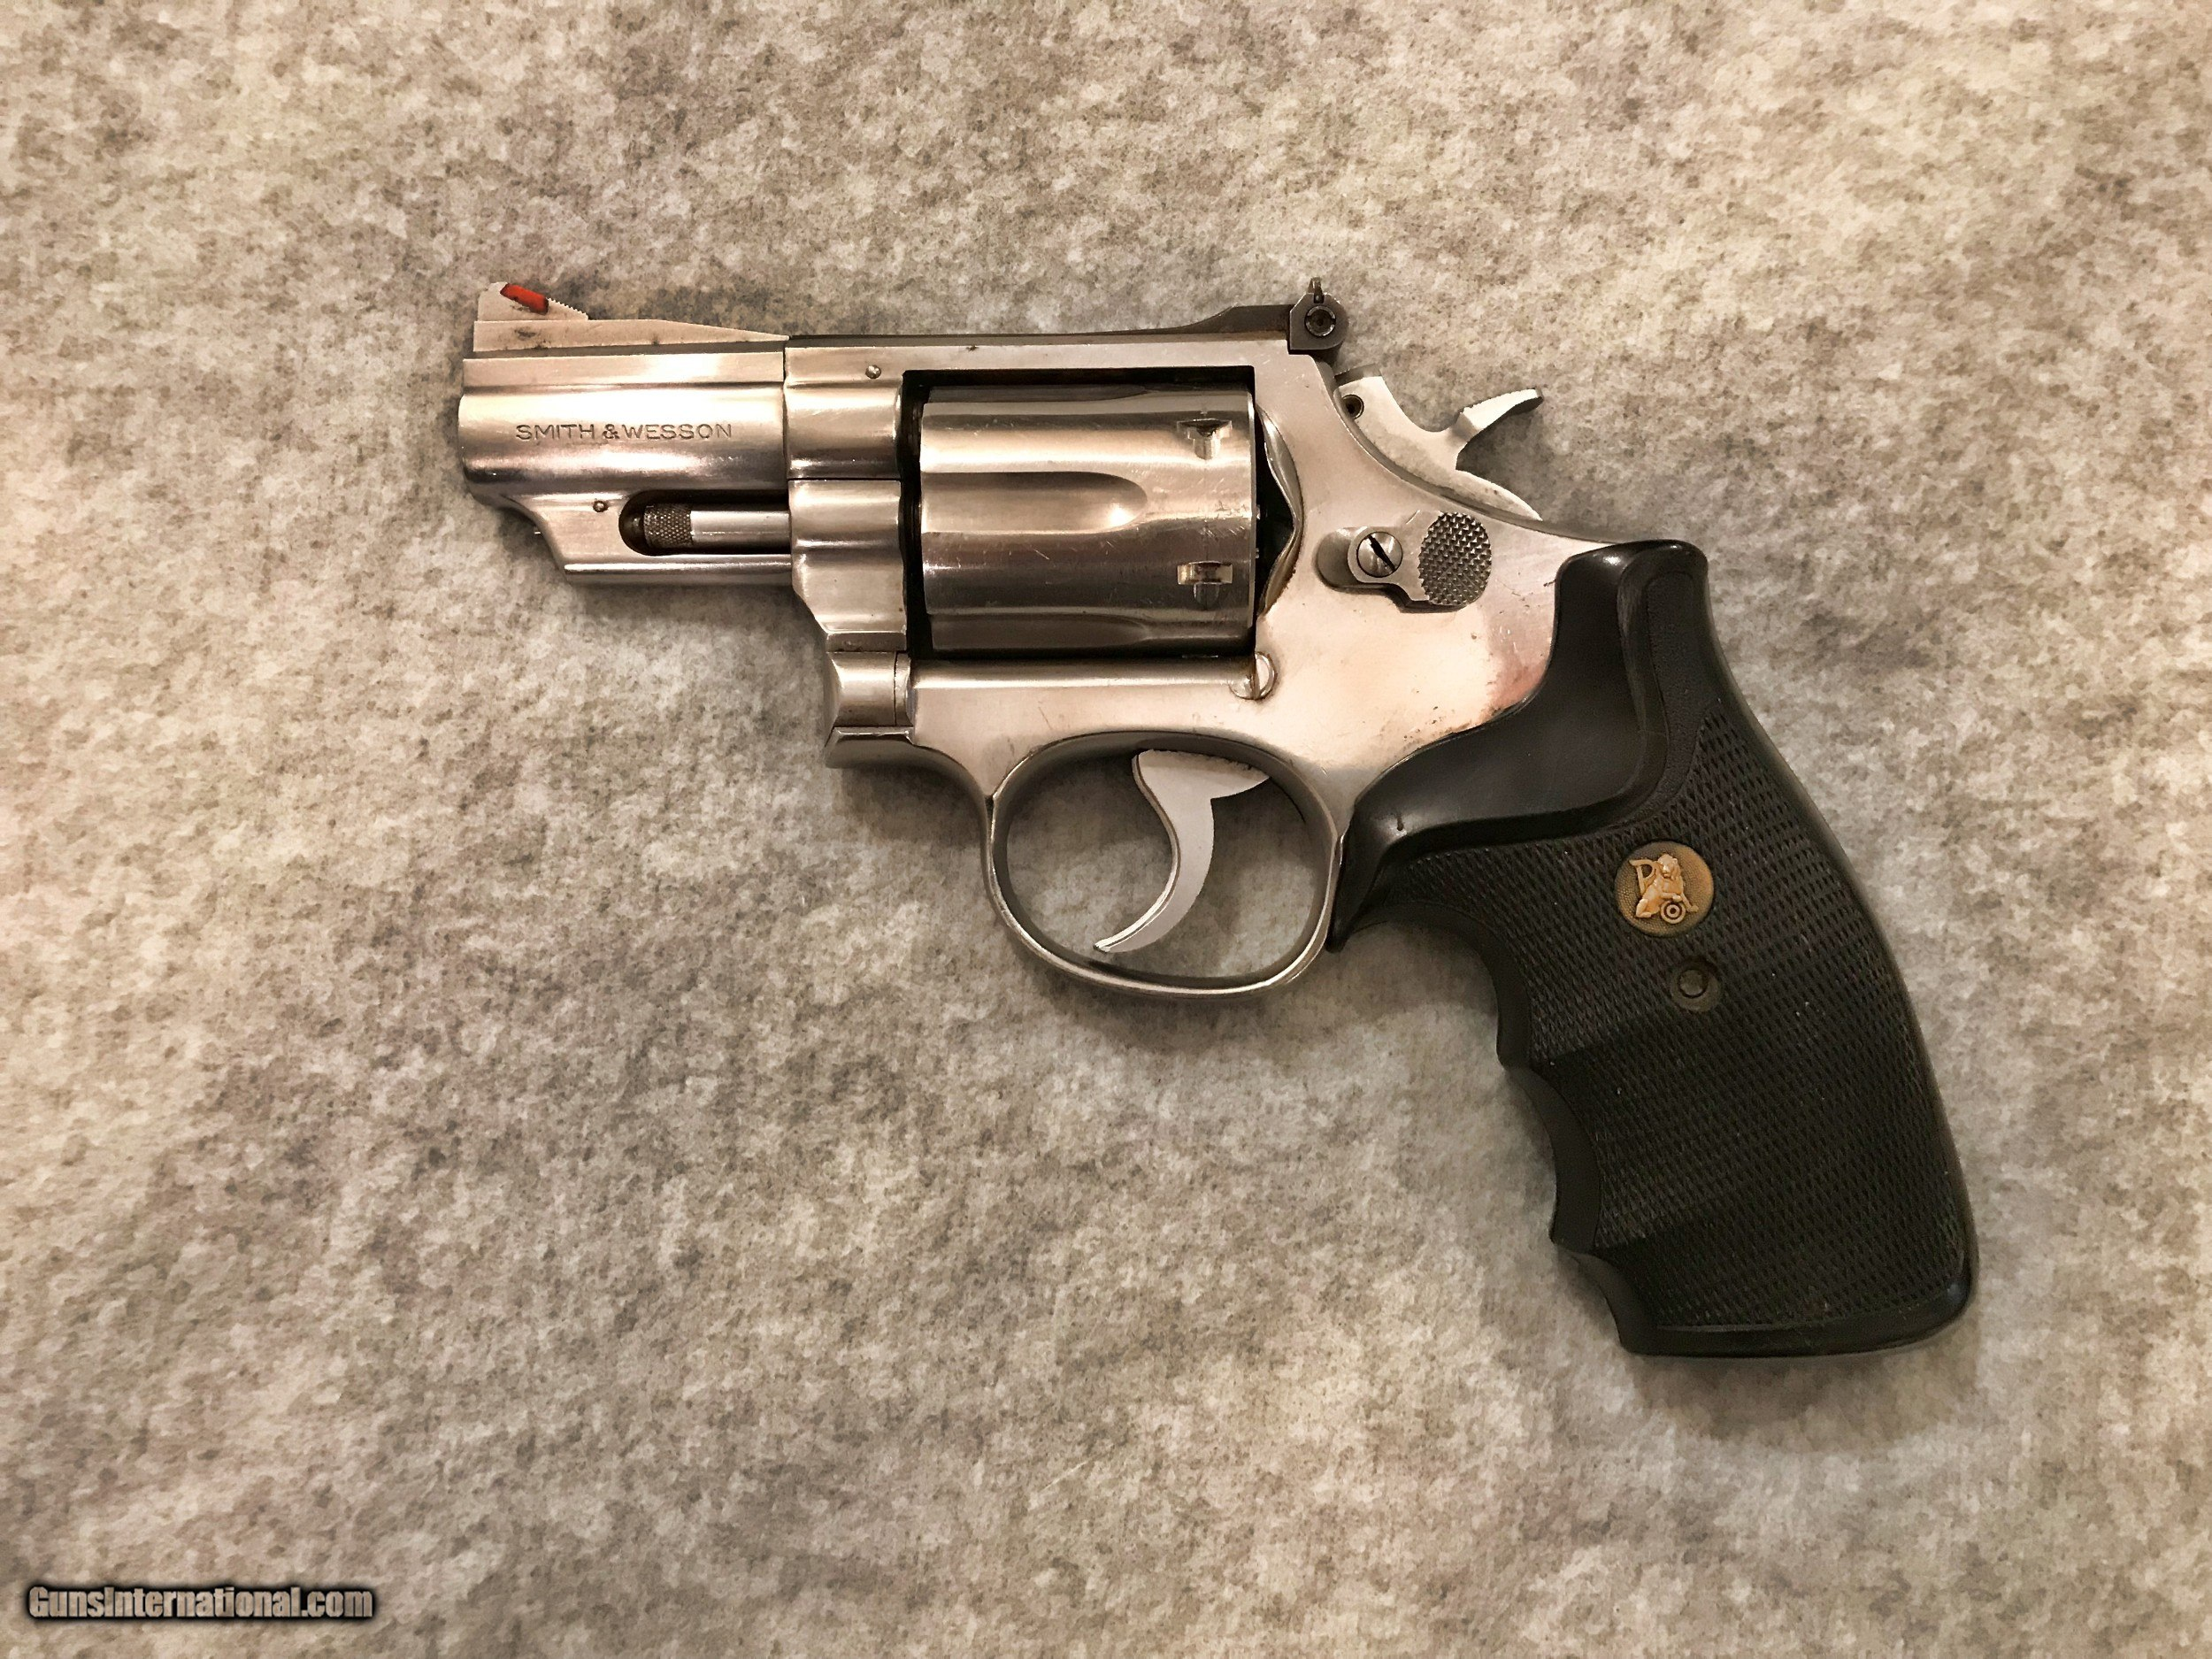 SMITH & WESSON 66-1 STAINLESS 2 1/2 IN BRL 357 MAG REVOLVER